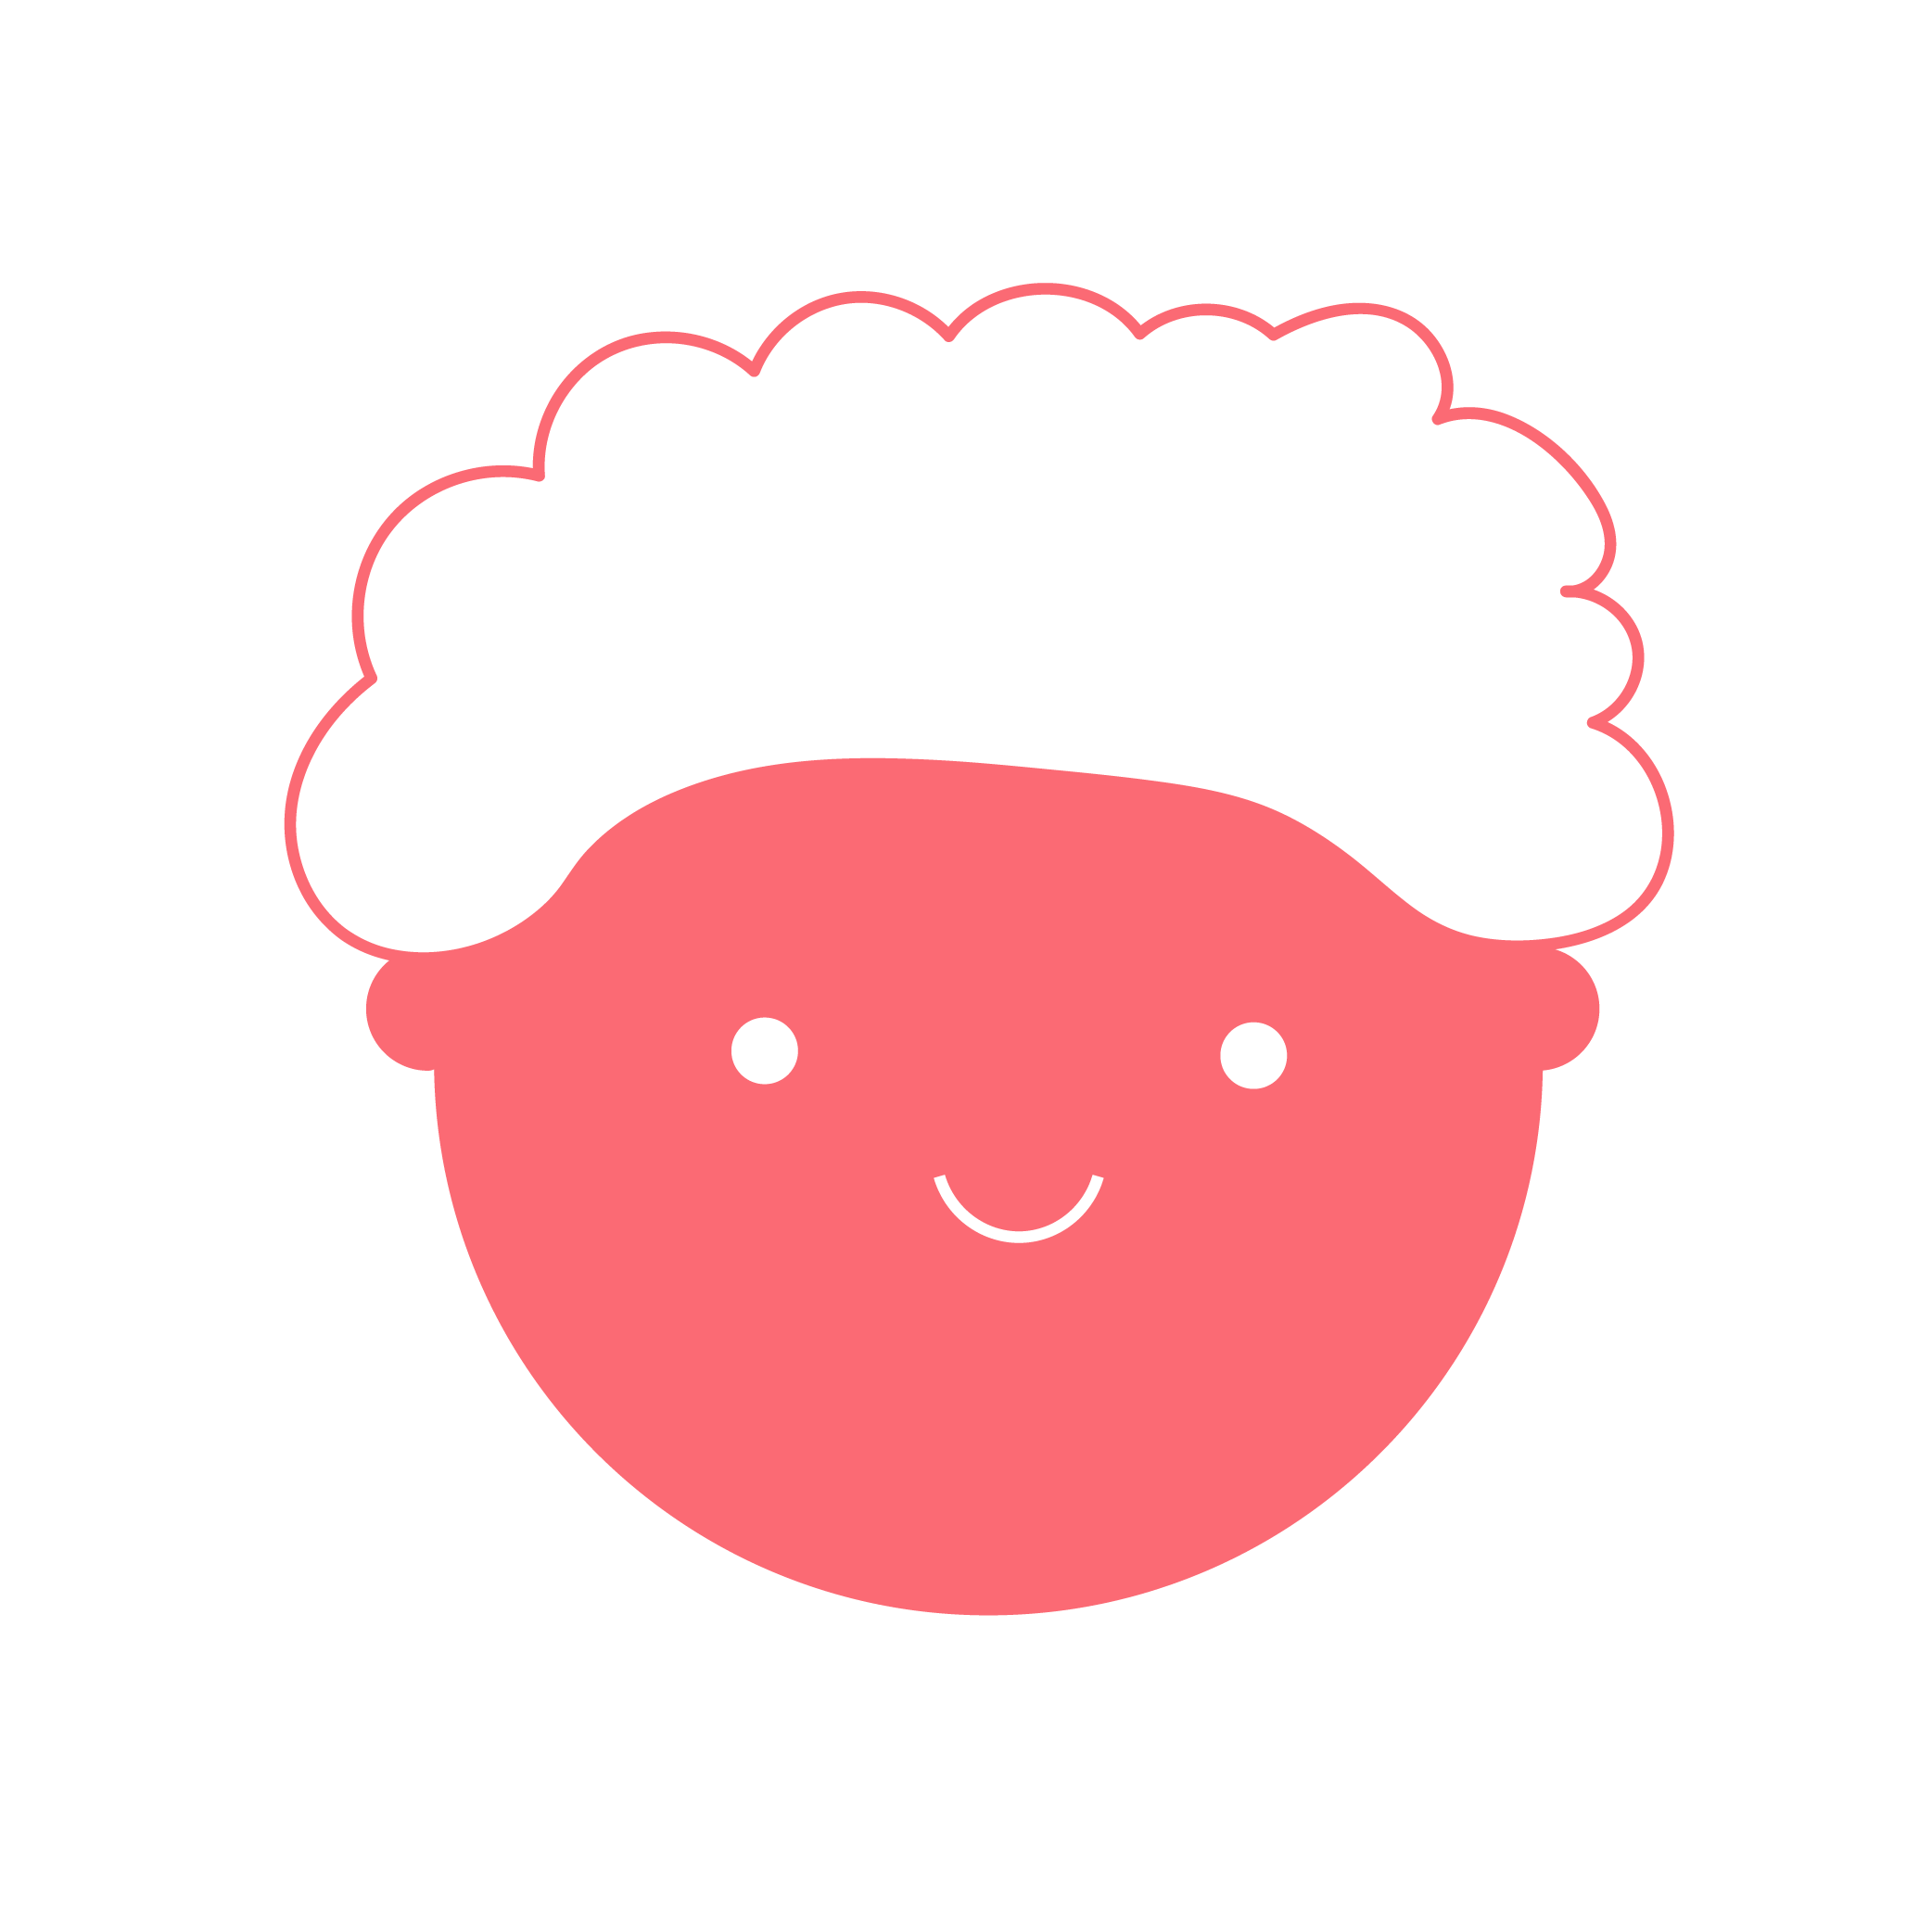 person icon1-12.png